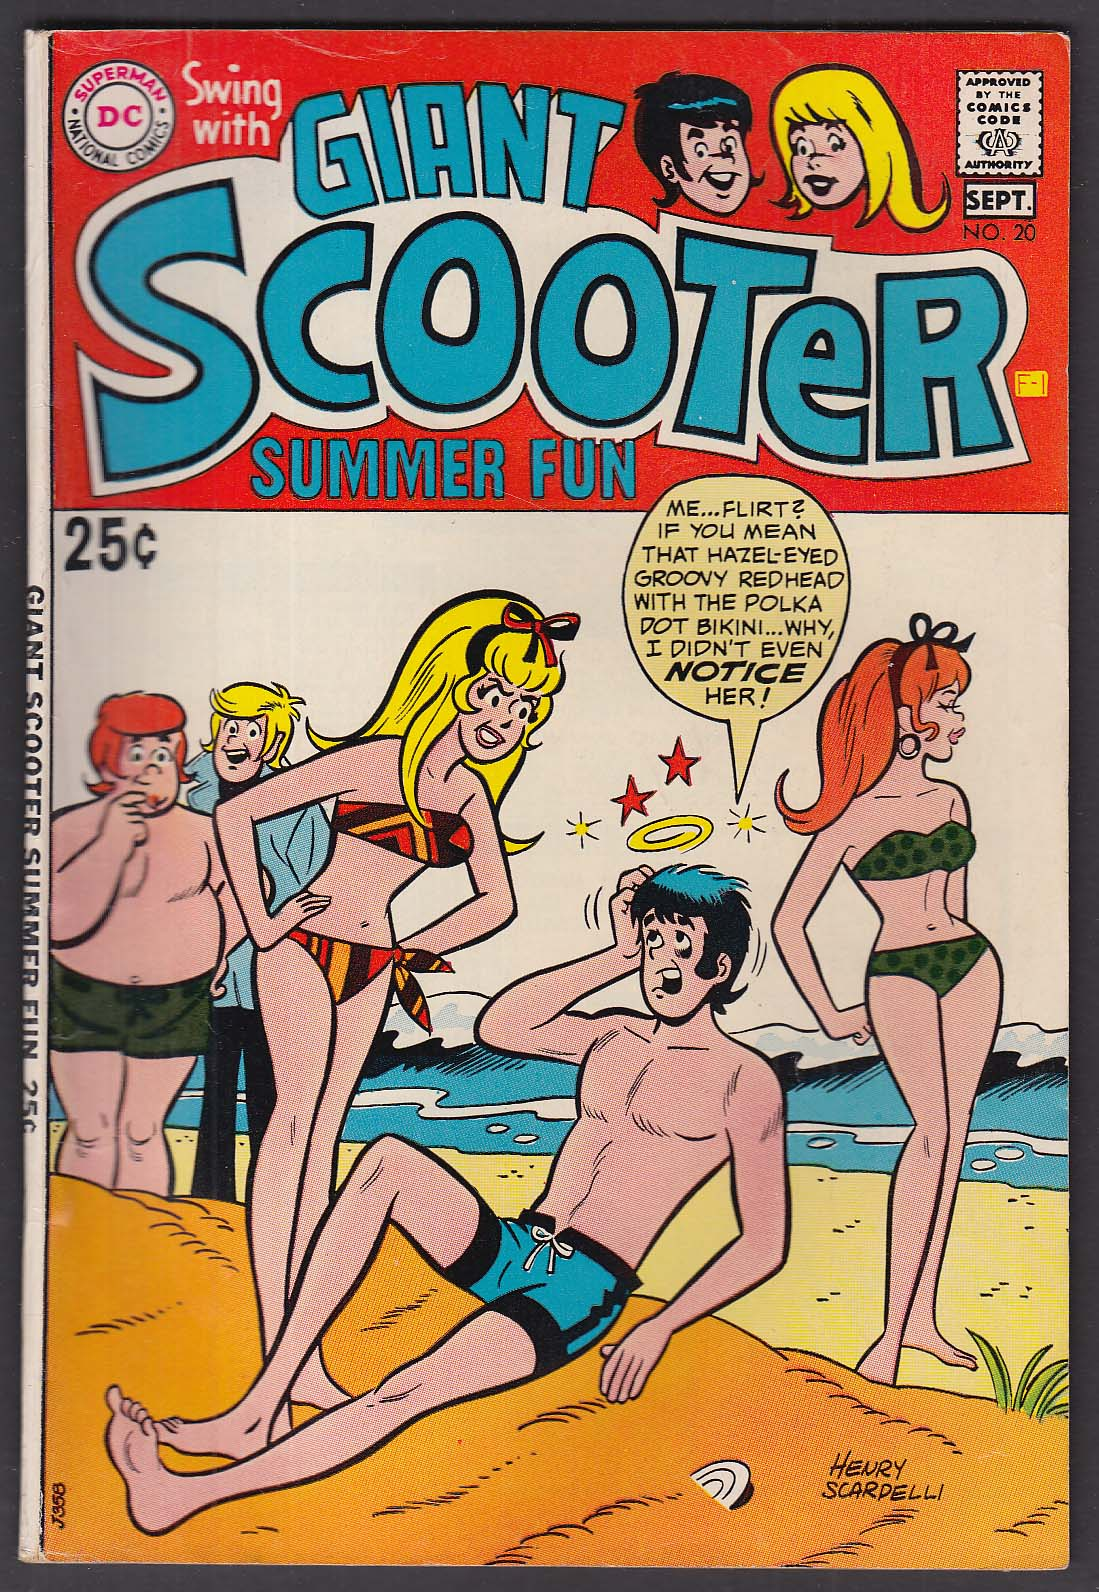 Swing with SCOOTER #20 DC comic book 9 1969 Giant Scooter Summer Fun